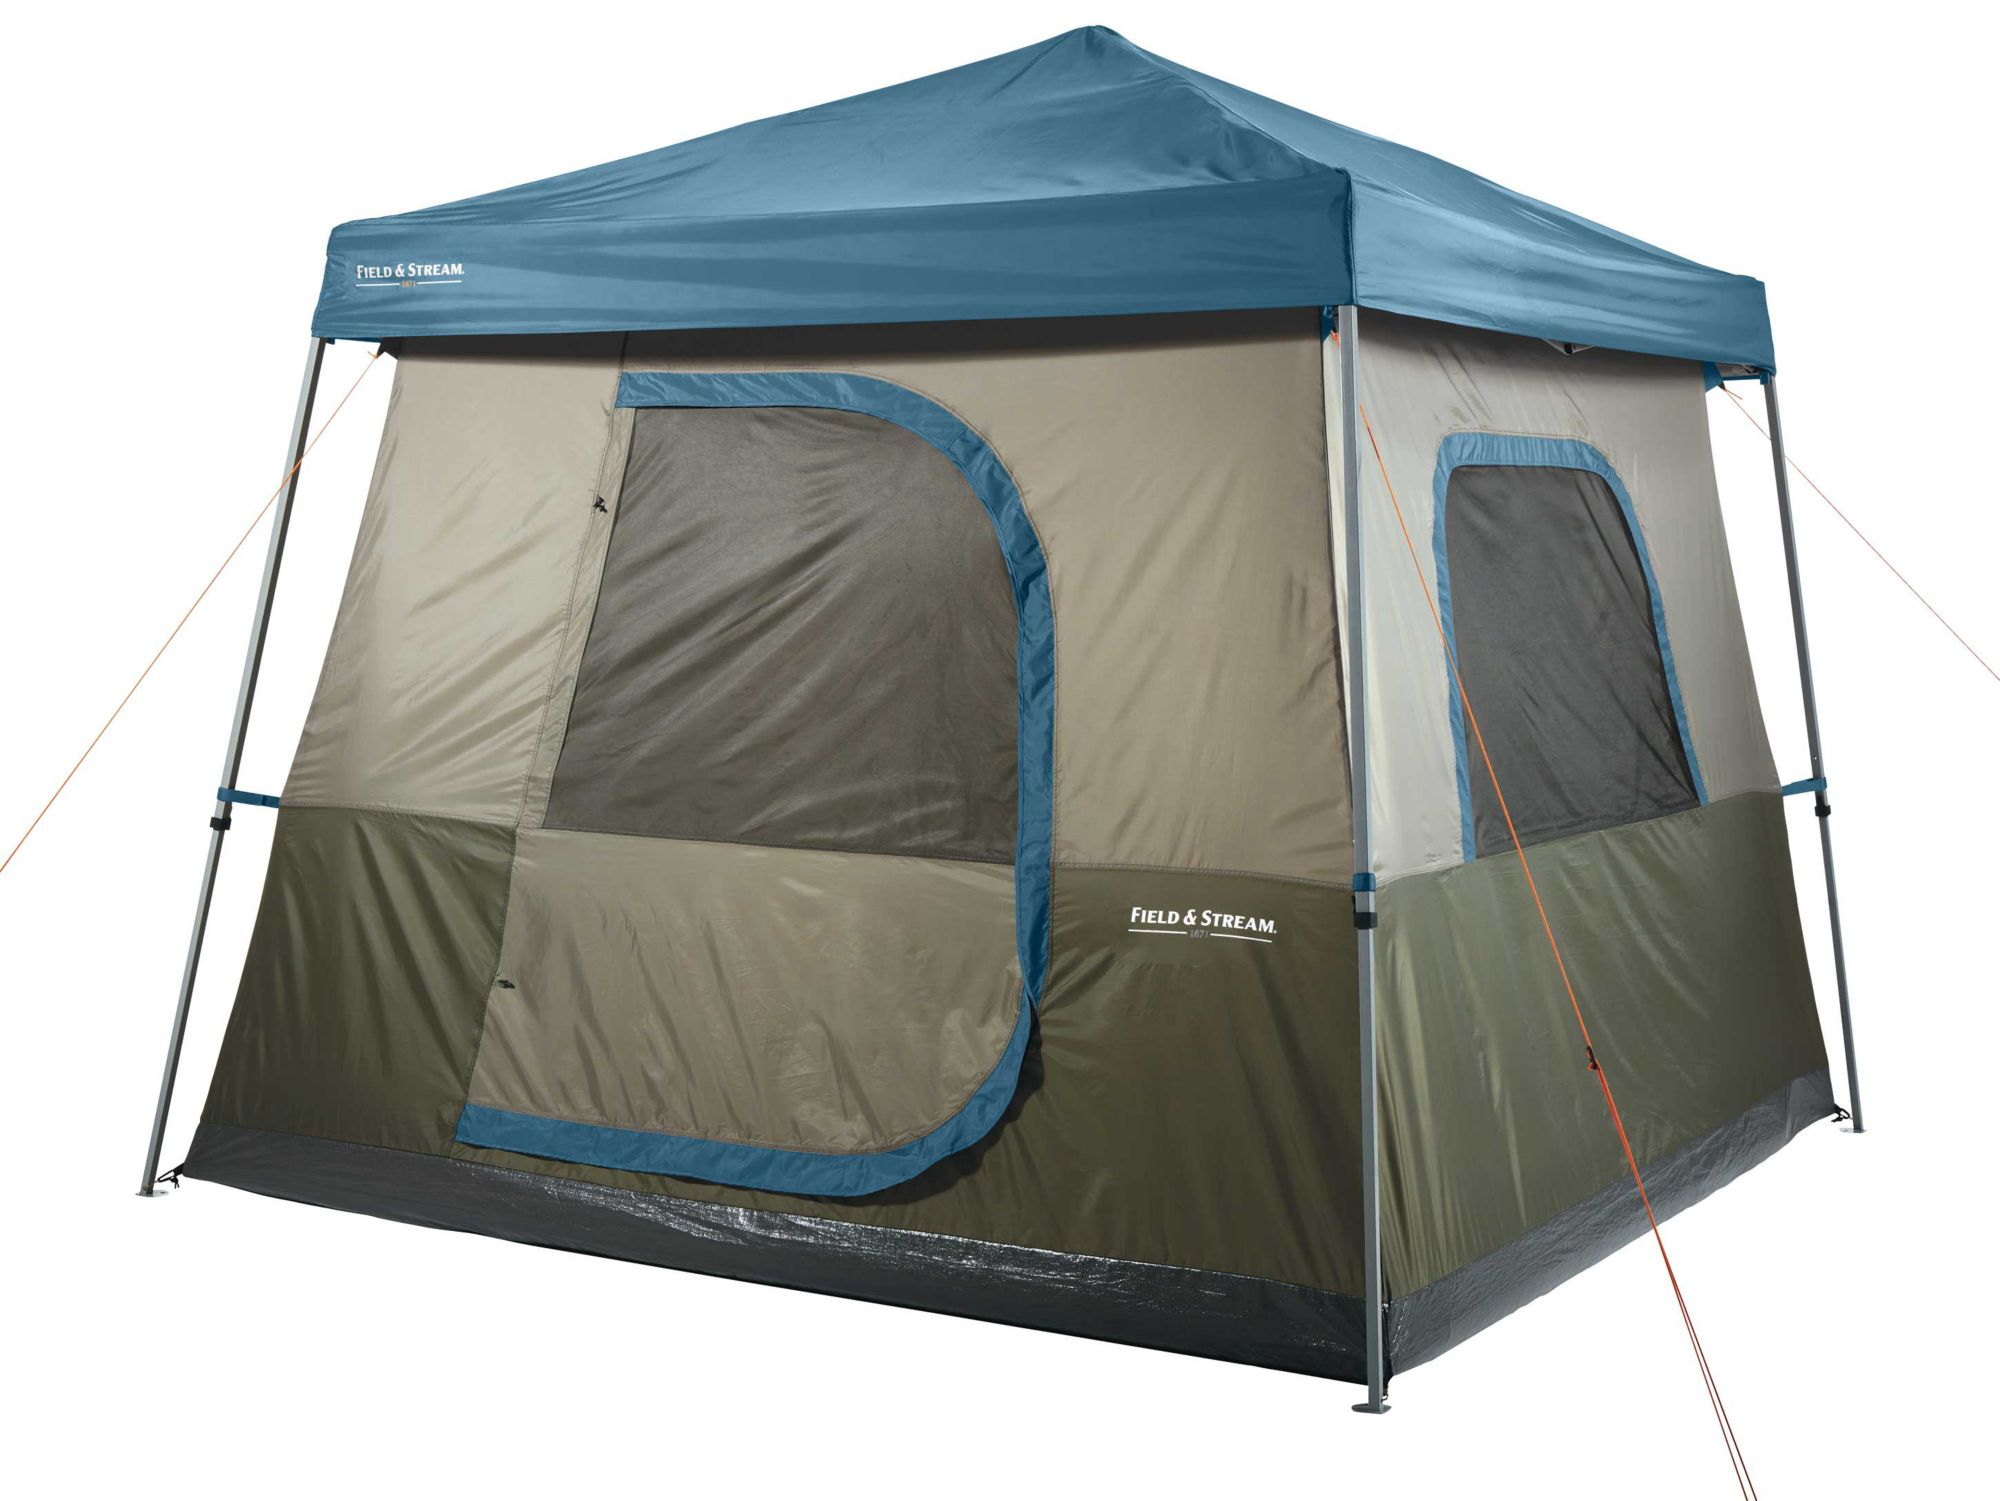 Product Image Field u0026 Stream 5 Person Canopy Tent  sc 1 st  DICKu0027S Sporting Goods & Canopy Tents Pop Up Tents u0026 More | DICKu0027S Sporting Goods